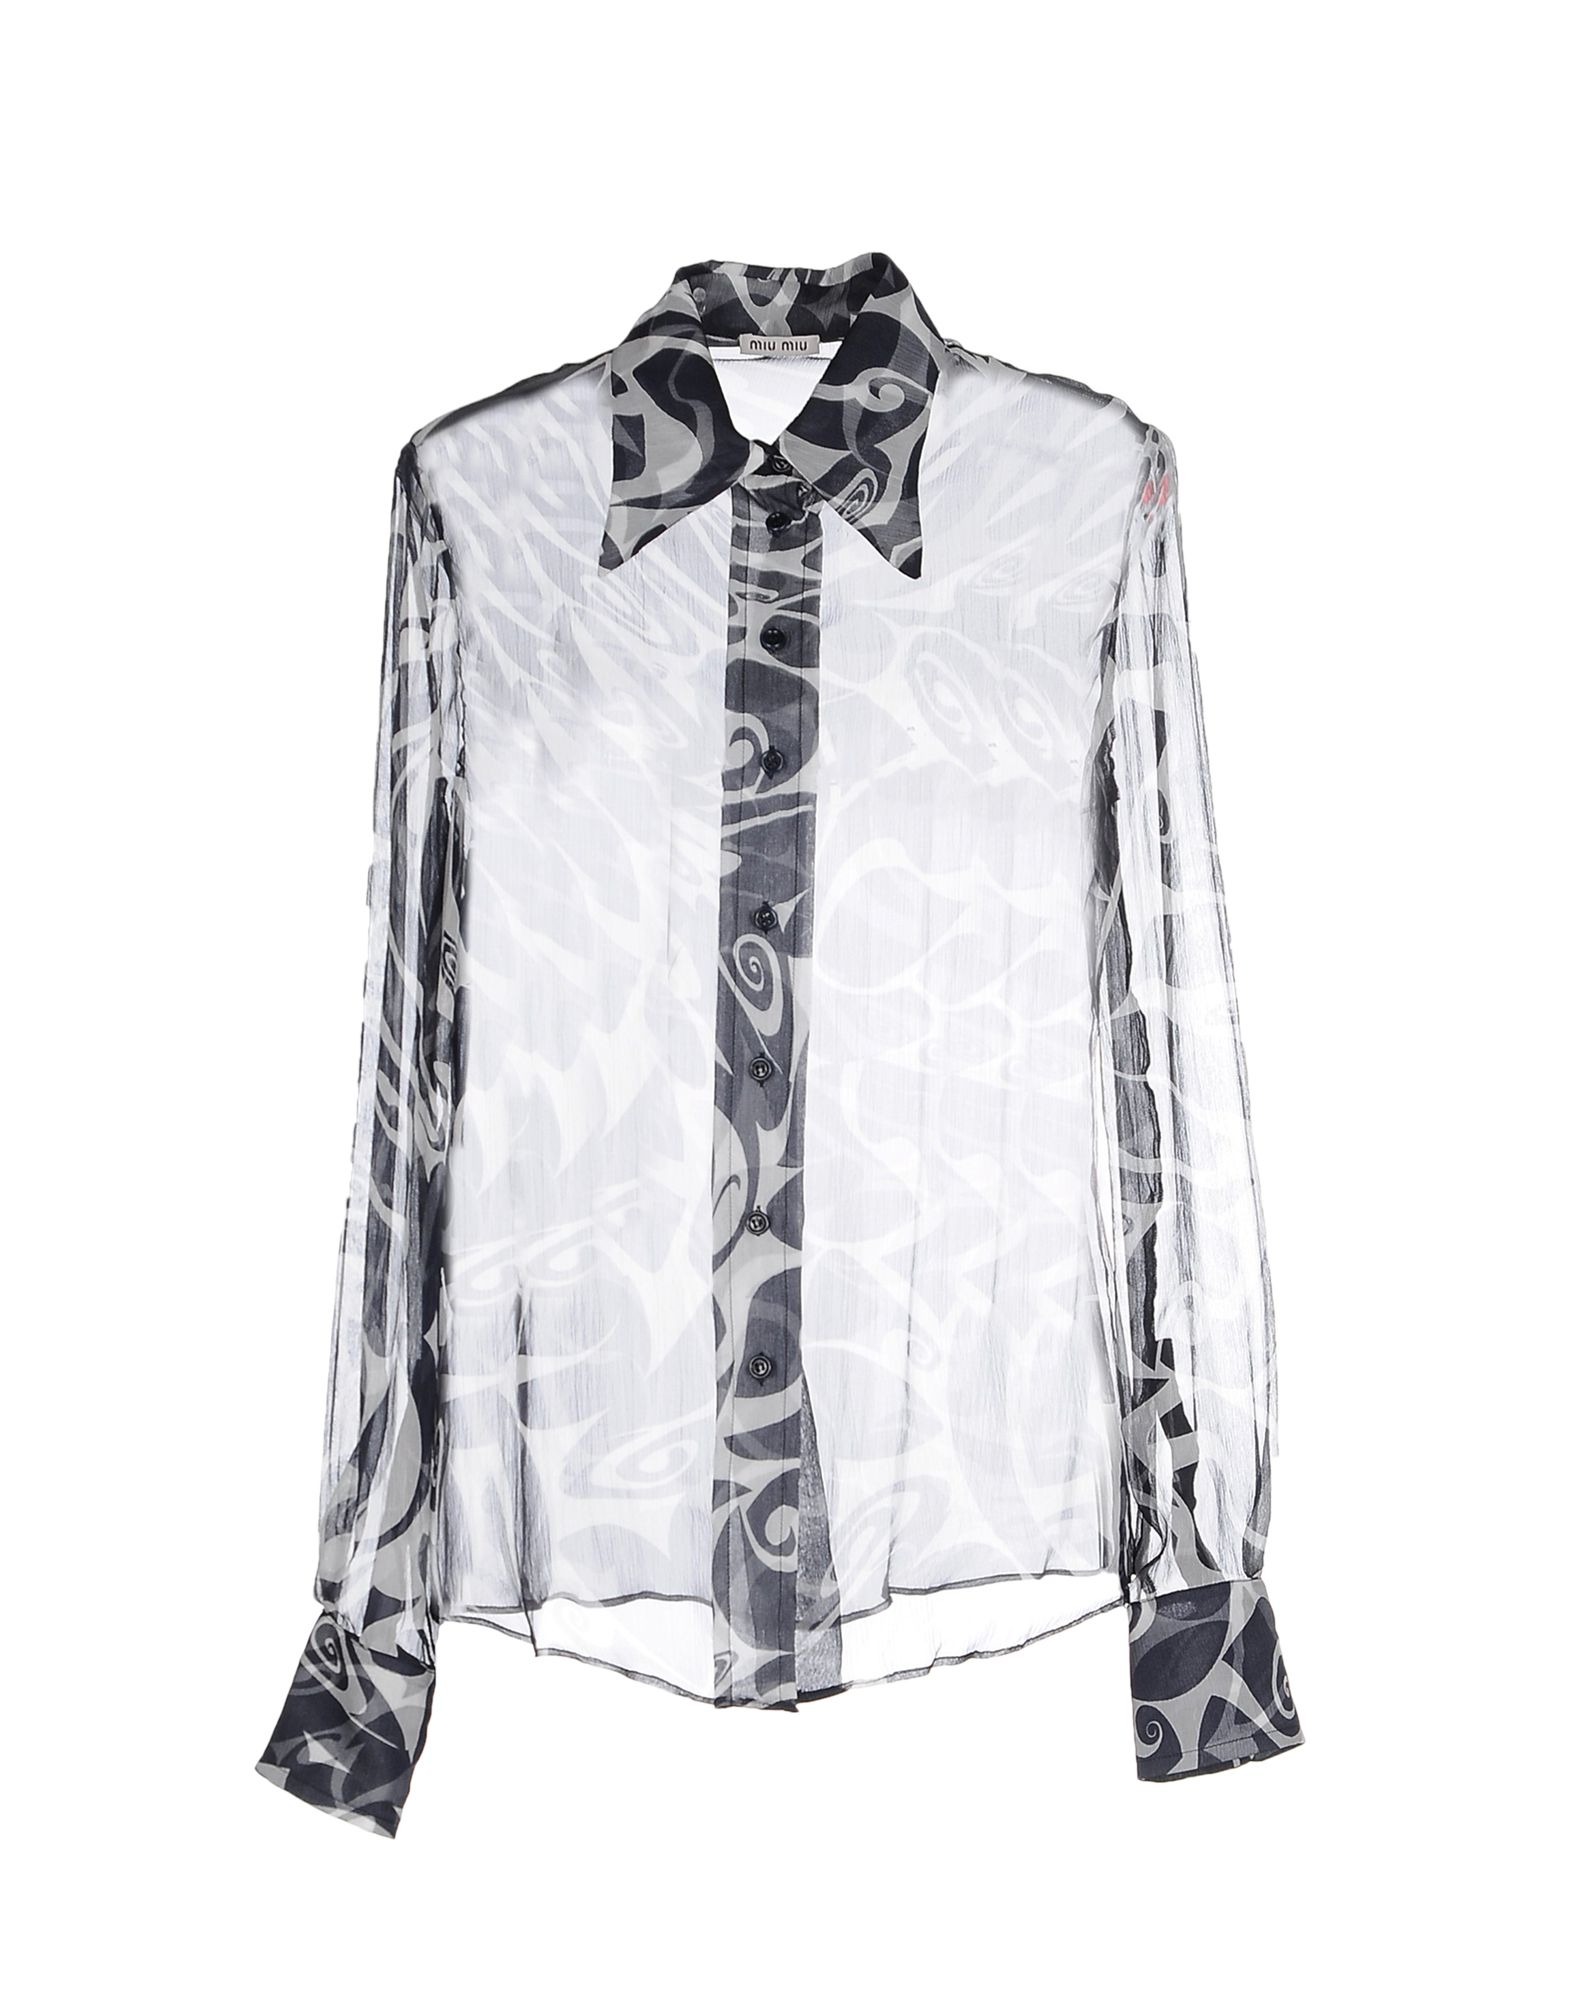 232b861dba1 Miu Miu Patterned Shirts   Blouses - Women Miu Miu Patterned Shirts ...